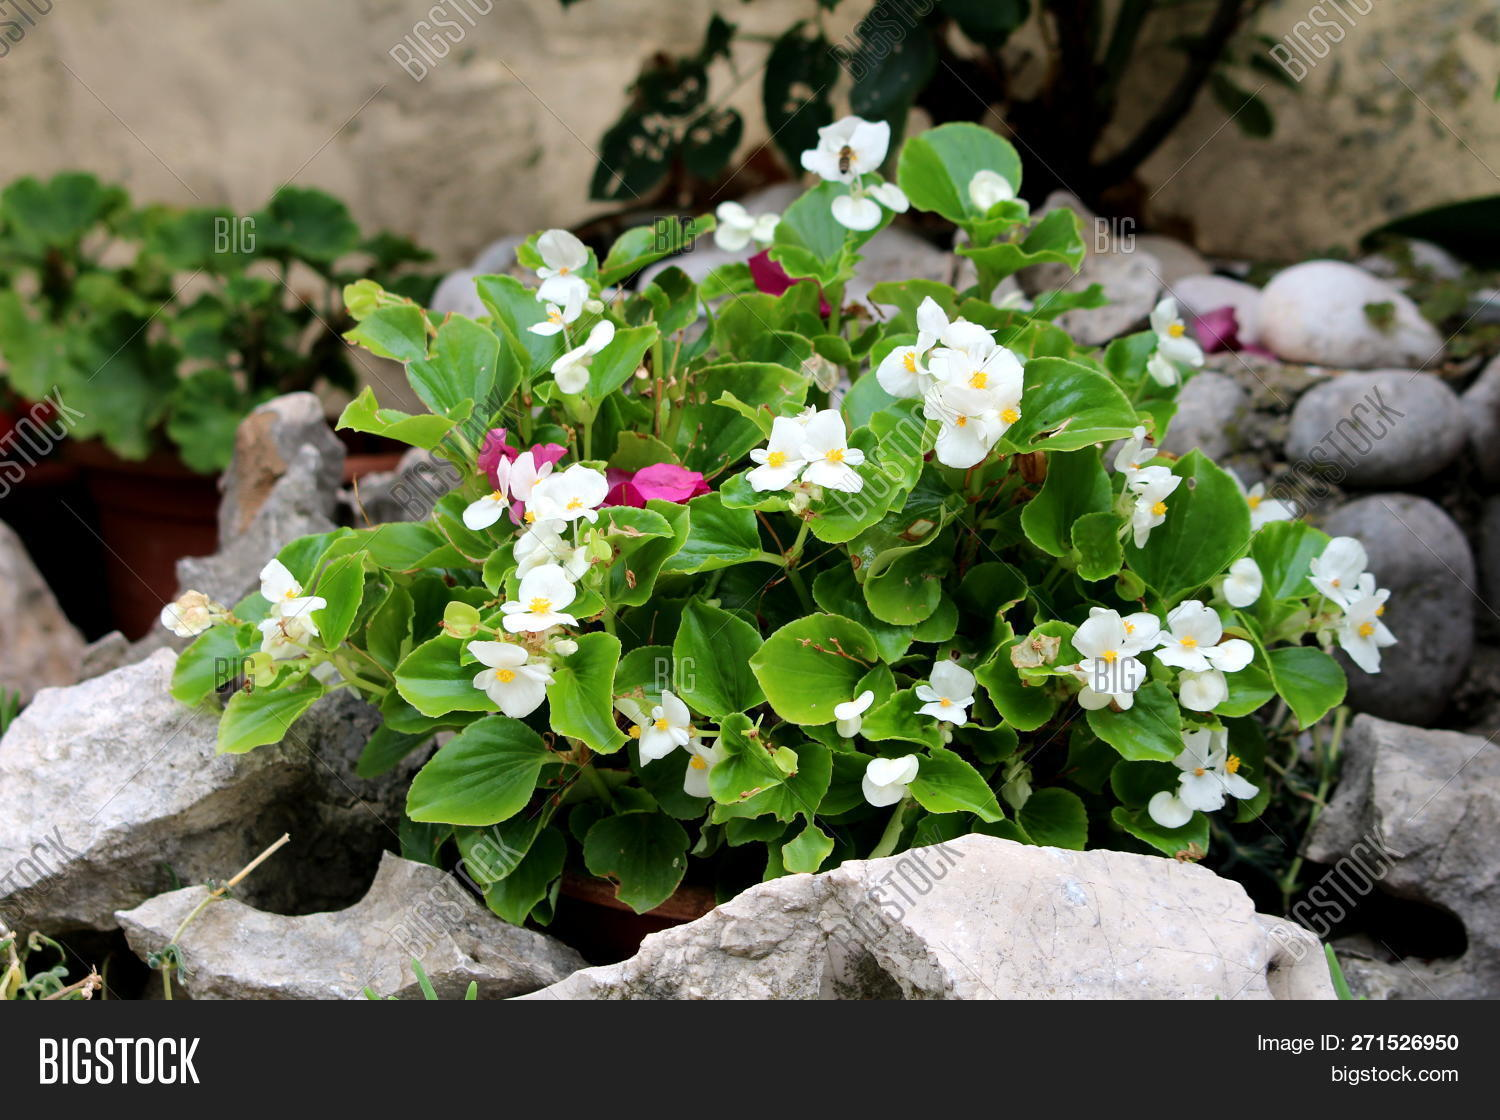 Begonia Plant Light Image & Photo (Free Trial) | Bigstock